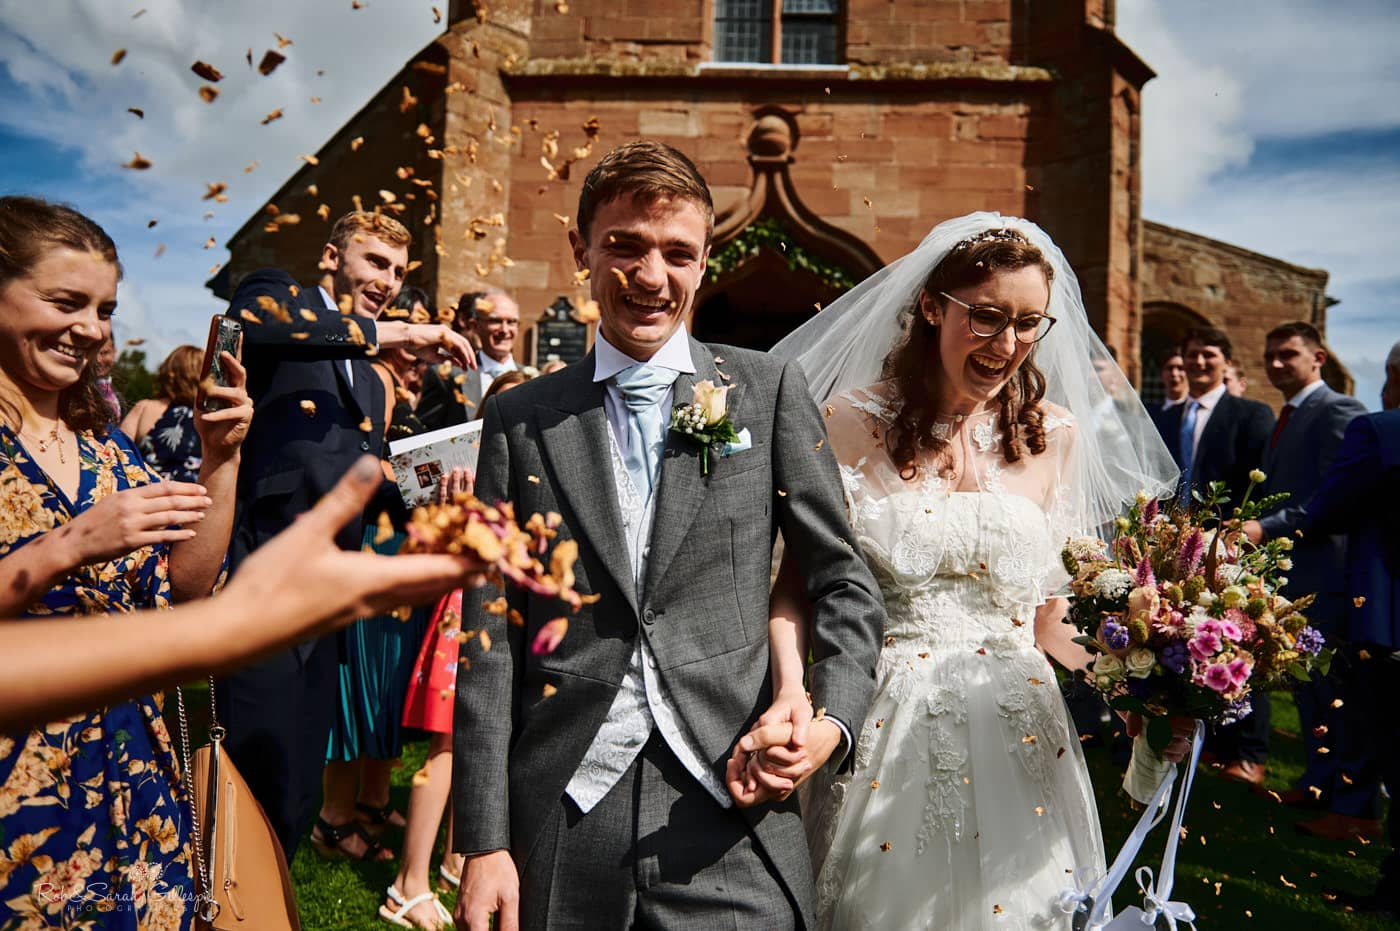 Confetti throw at Hanbury wedding